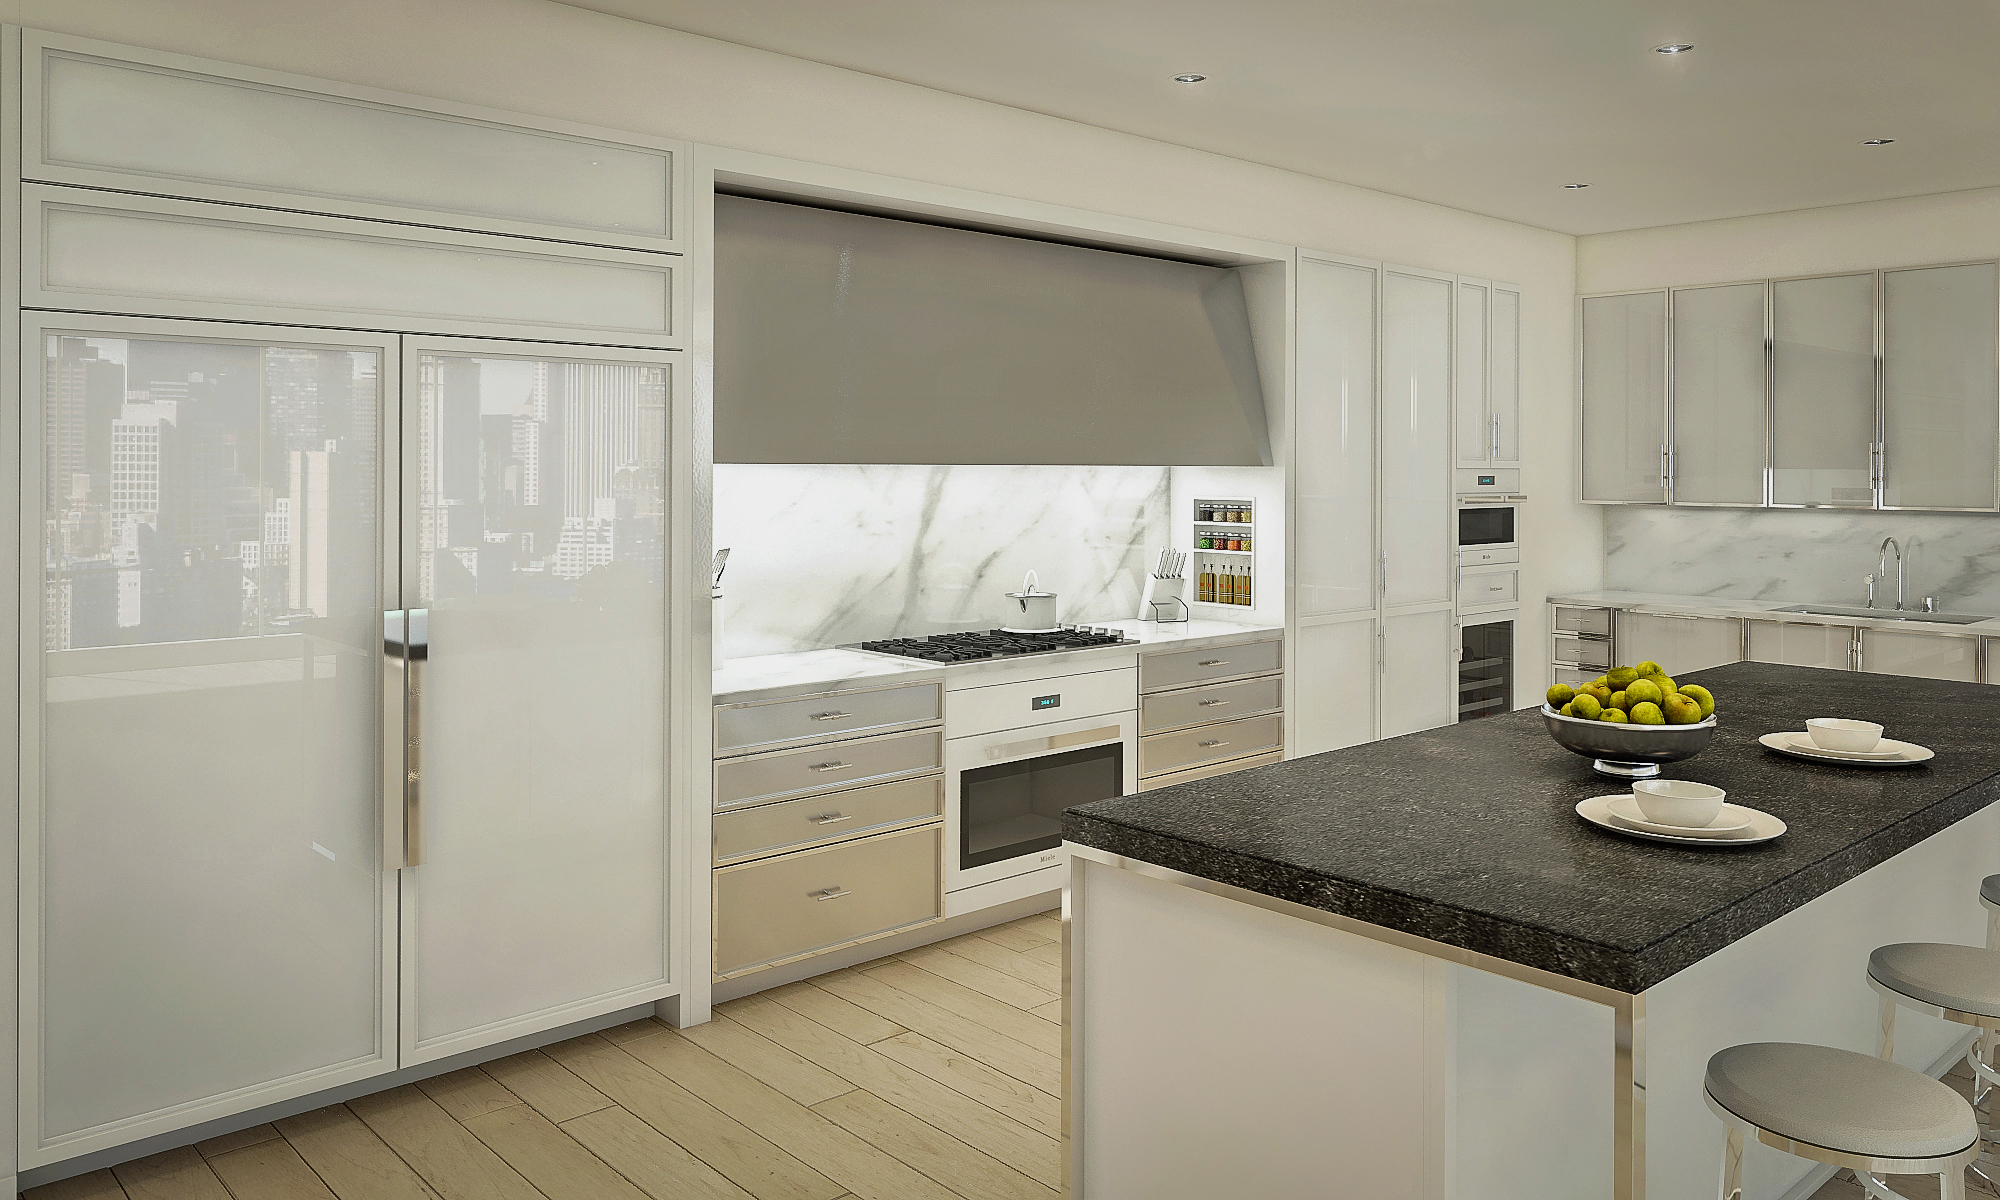 ARCHITECTURAL IMAGERY_IRP KITCHENS_03.jpg